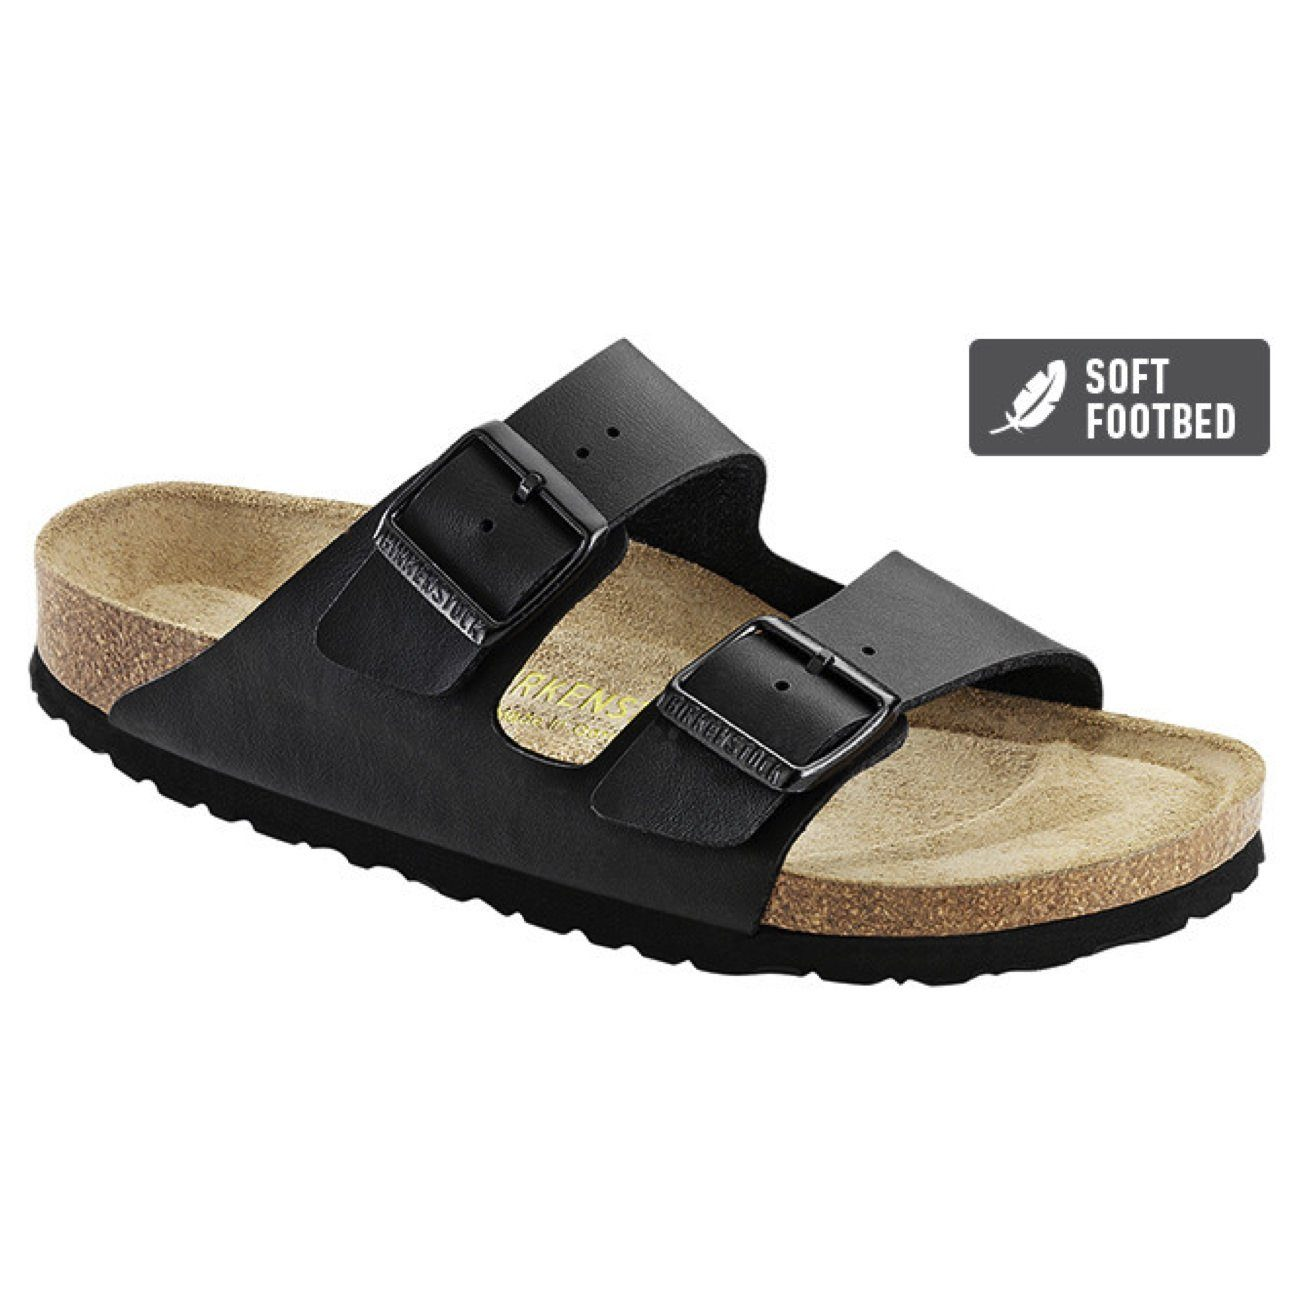 Birkenstock Classic, Arizona, Birko-Flor, Soft Footbed, Narrow Fit, Black Sandals Birkenstock Classic Black 35